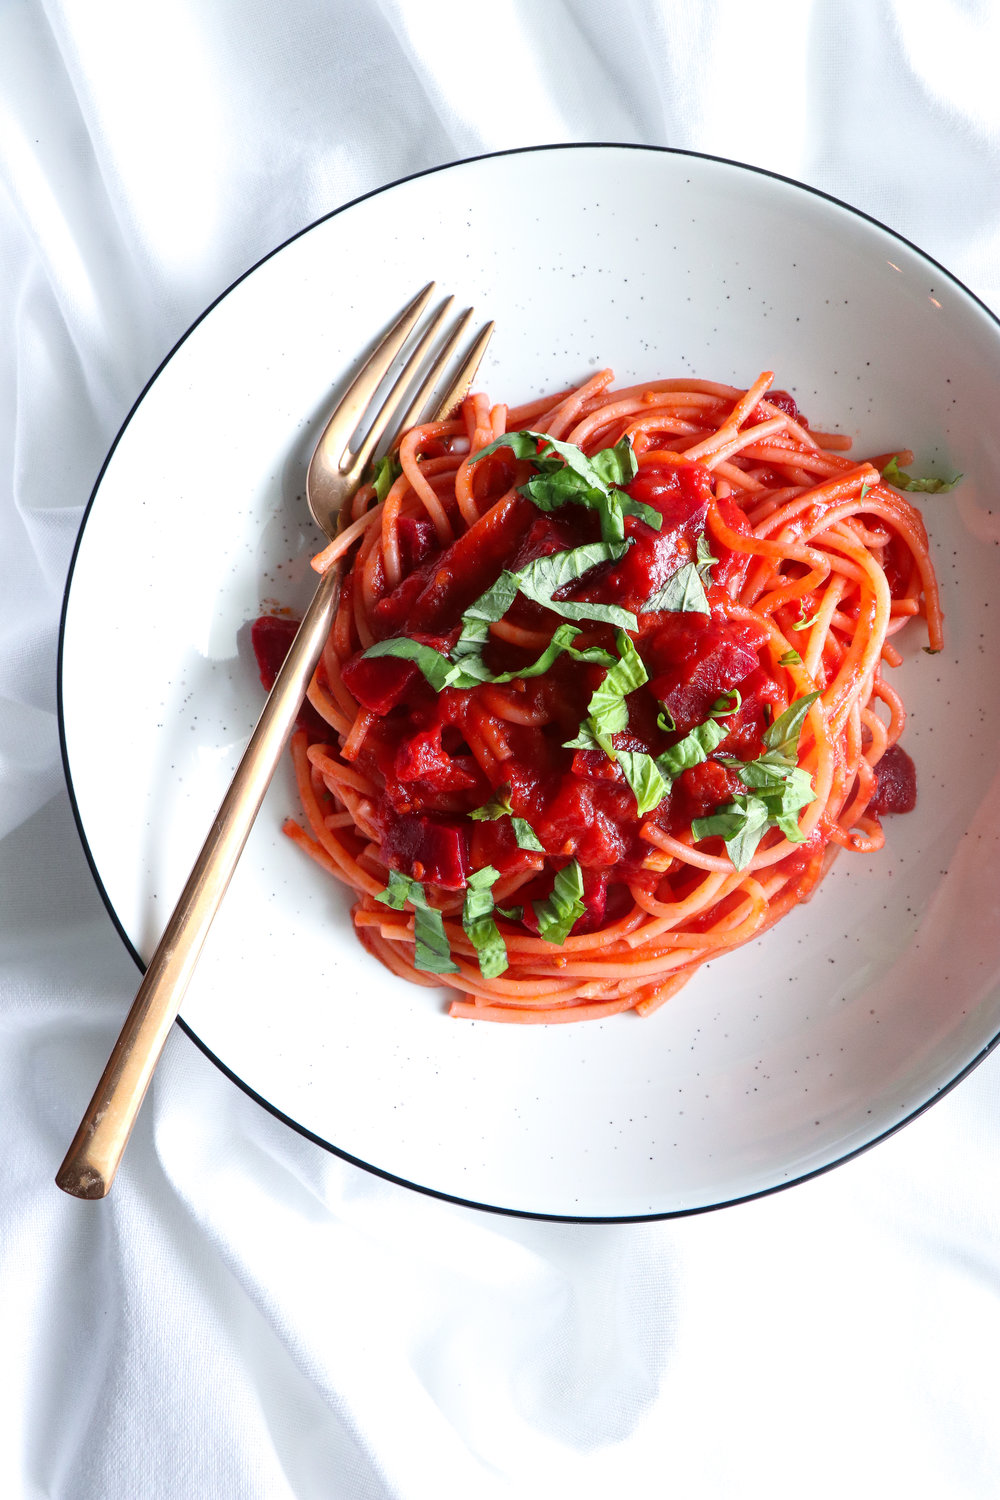 spaghetti with beets and tomato sauce